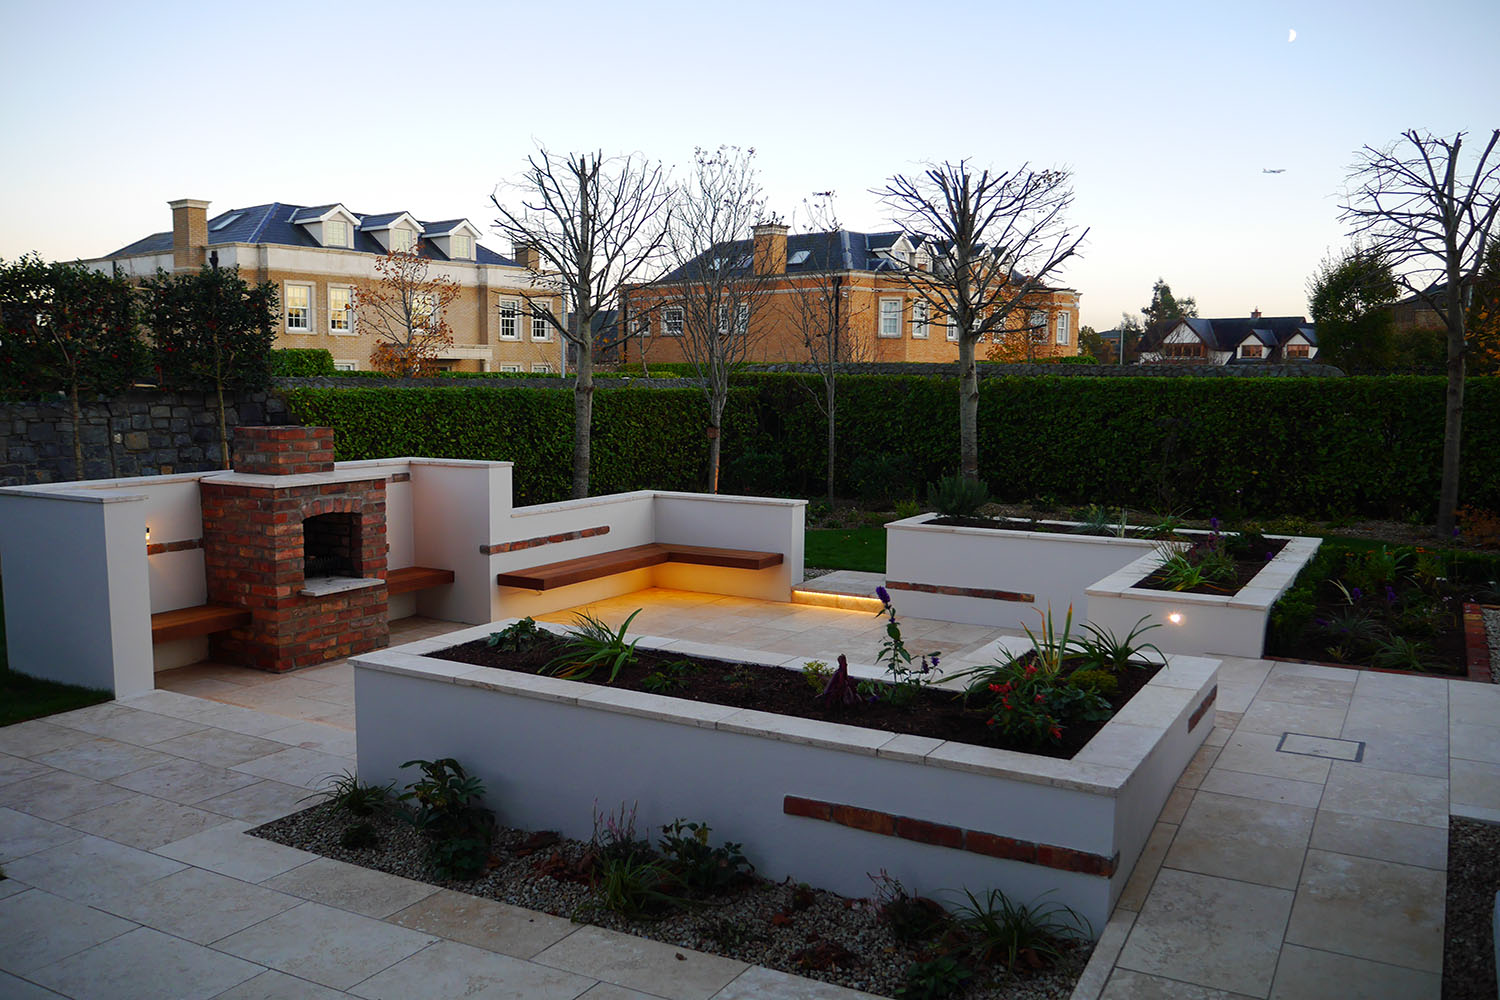 New period home with garden, Dublin - Tim Austen Garden ... on Backyard Patio Layout id=53302